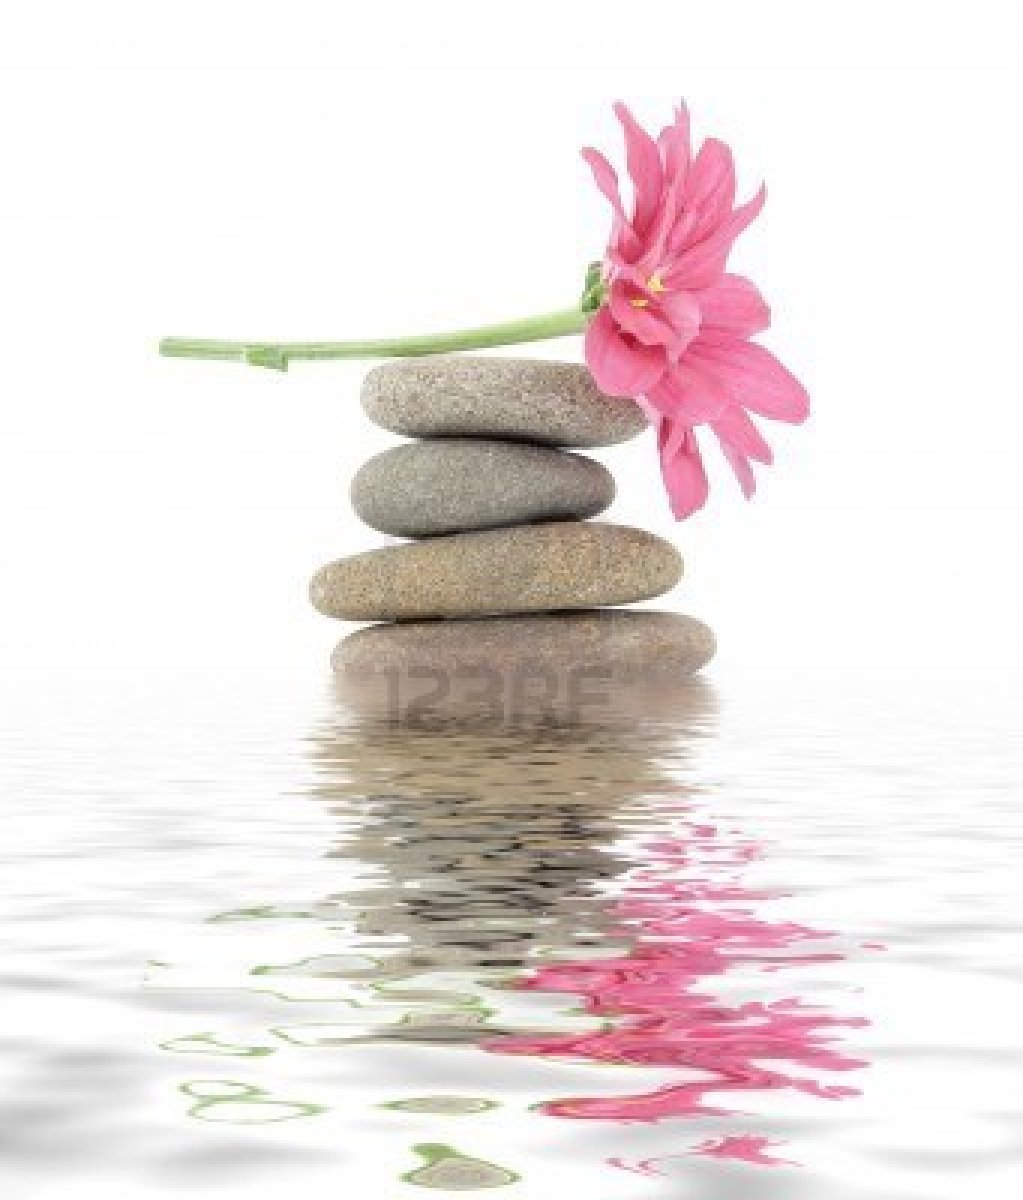 News from france going zen in 2013 soul searching - Image zen nature ...